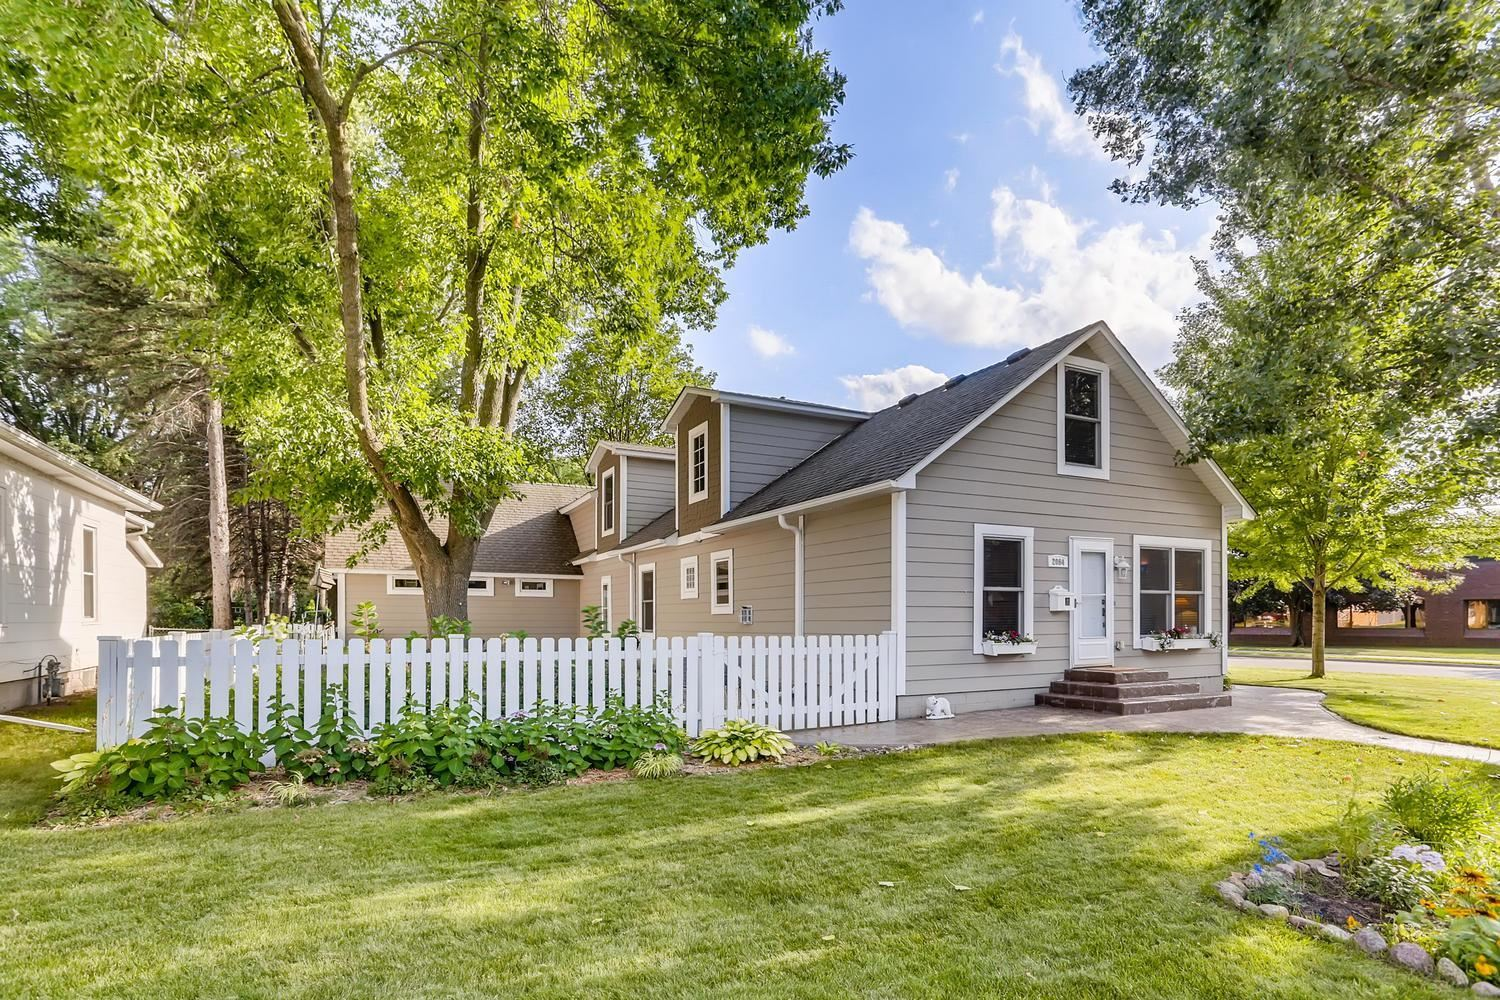 2084 4th Street, White Bear Lake, MN 55110 - MLS#: 5643274